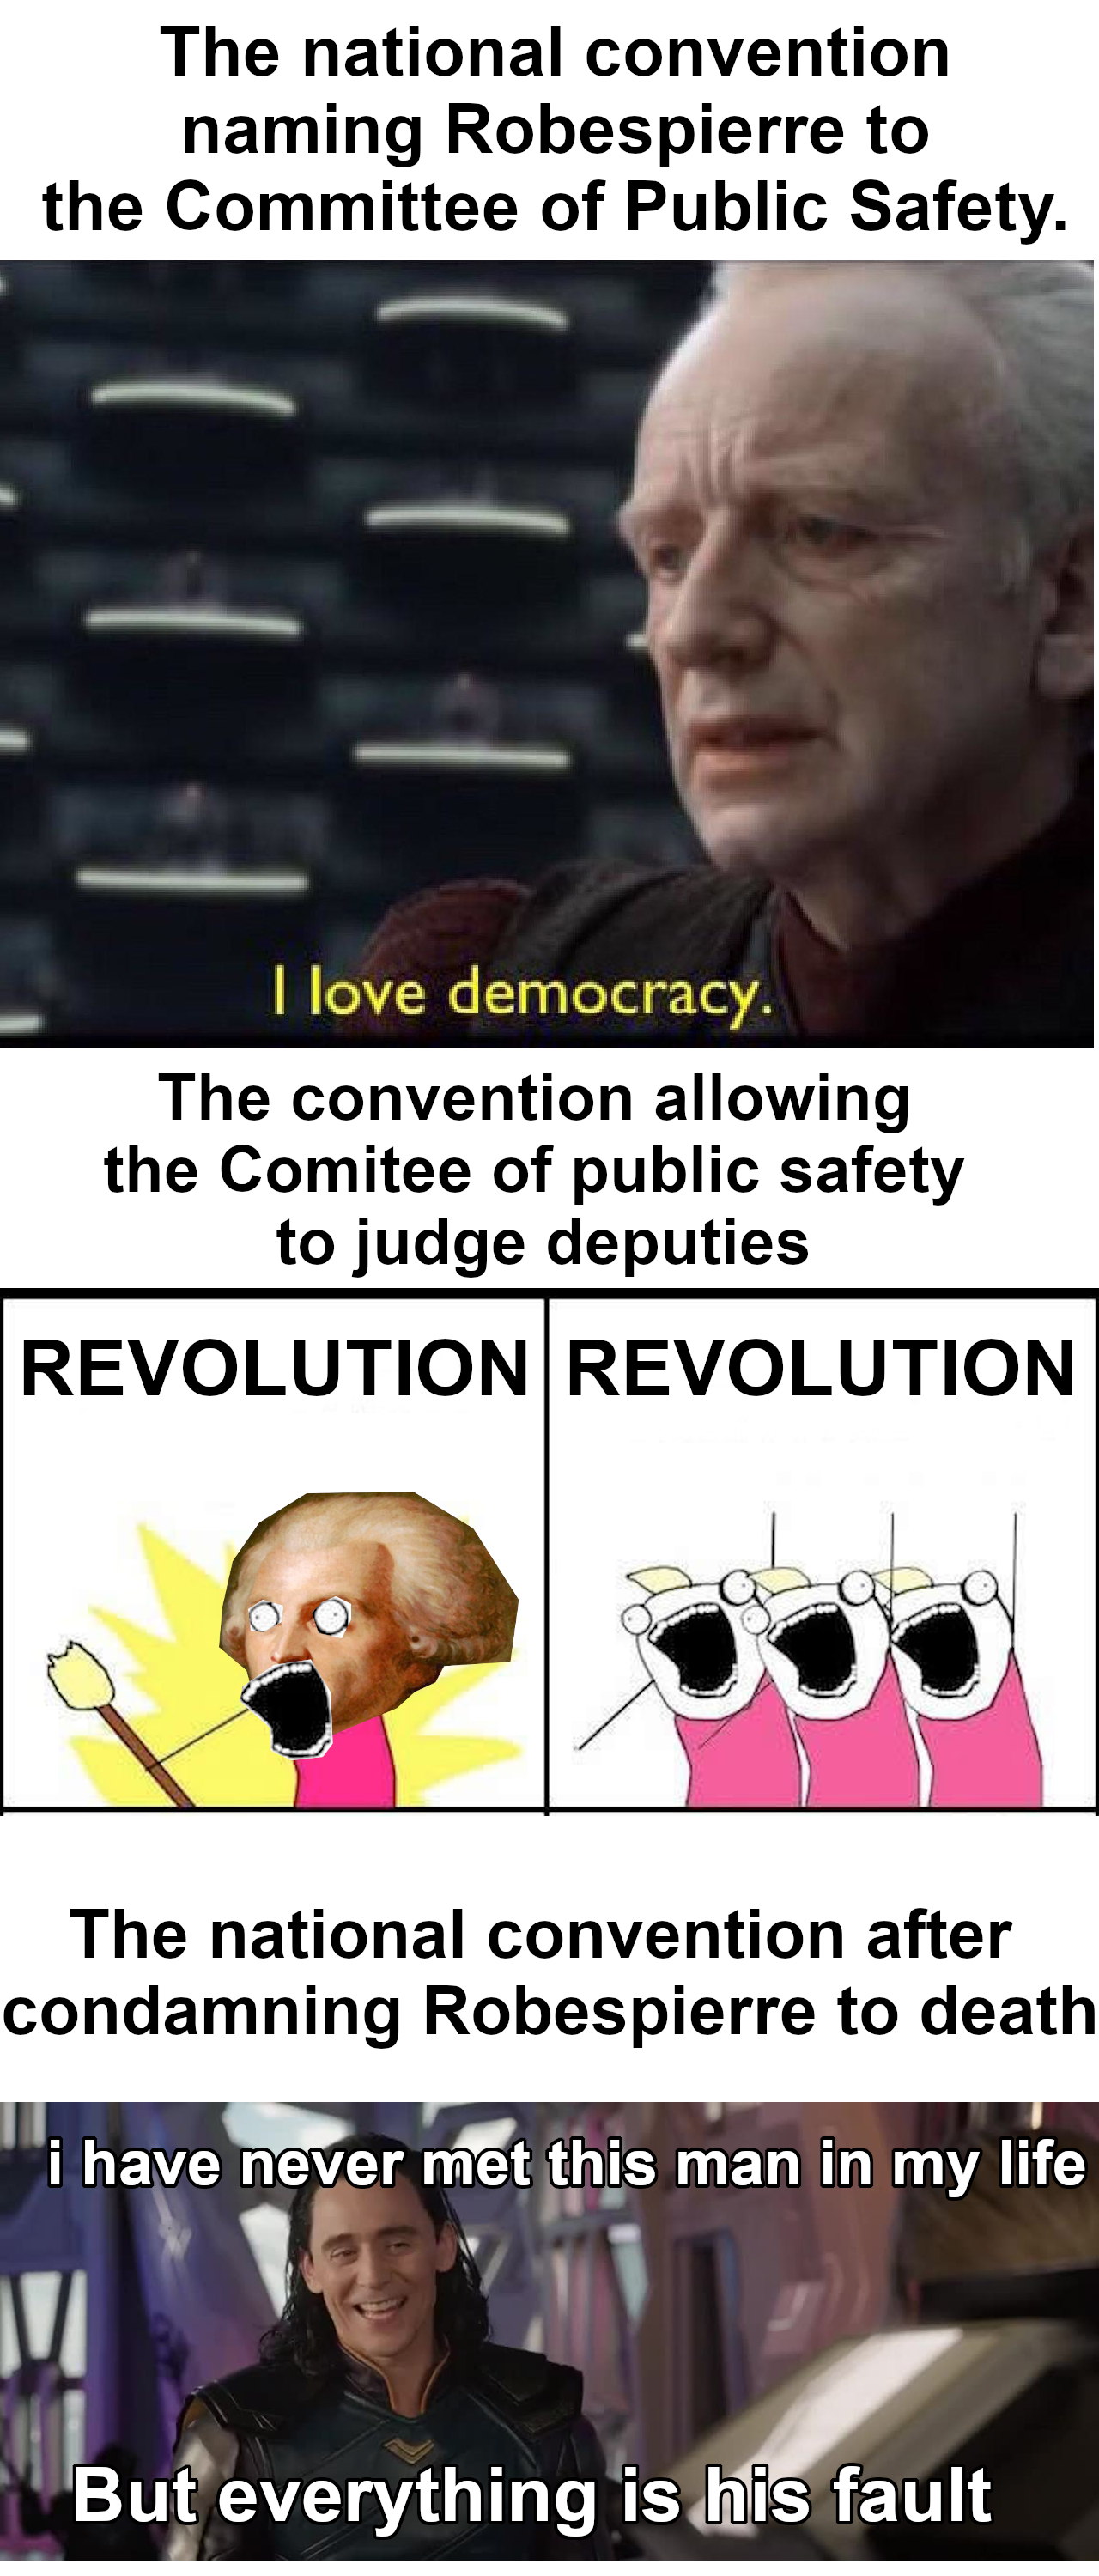 French Revolution Mistakes Were Made French Revolution Revolution Silly Jokes